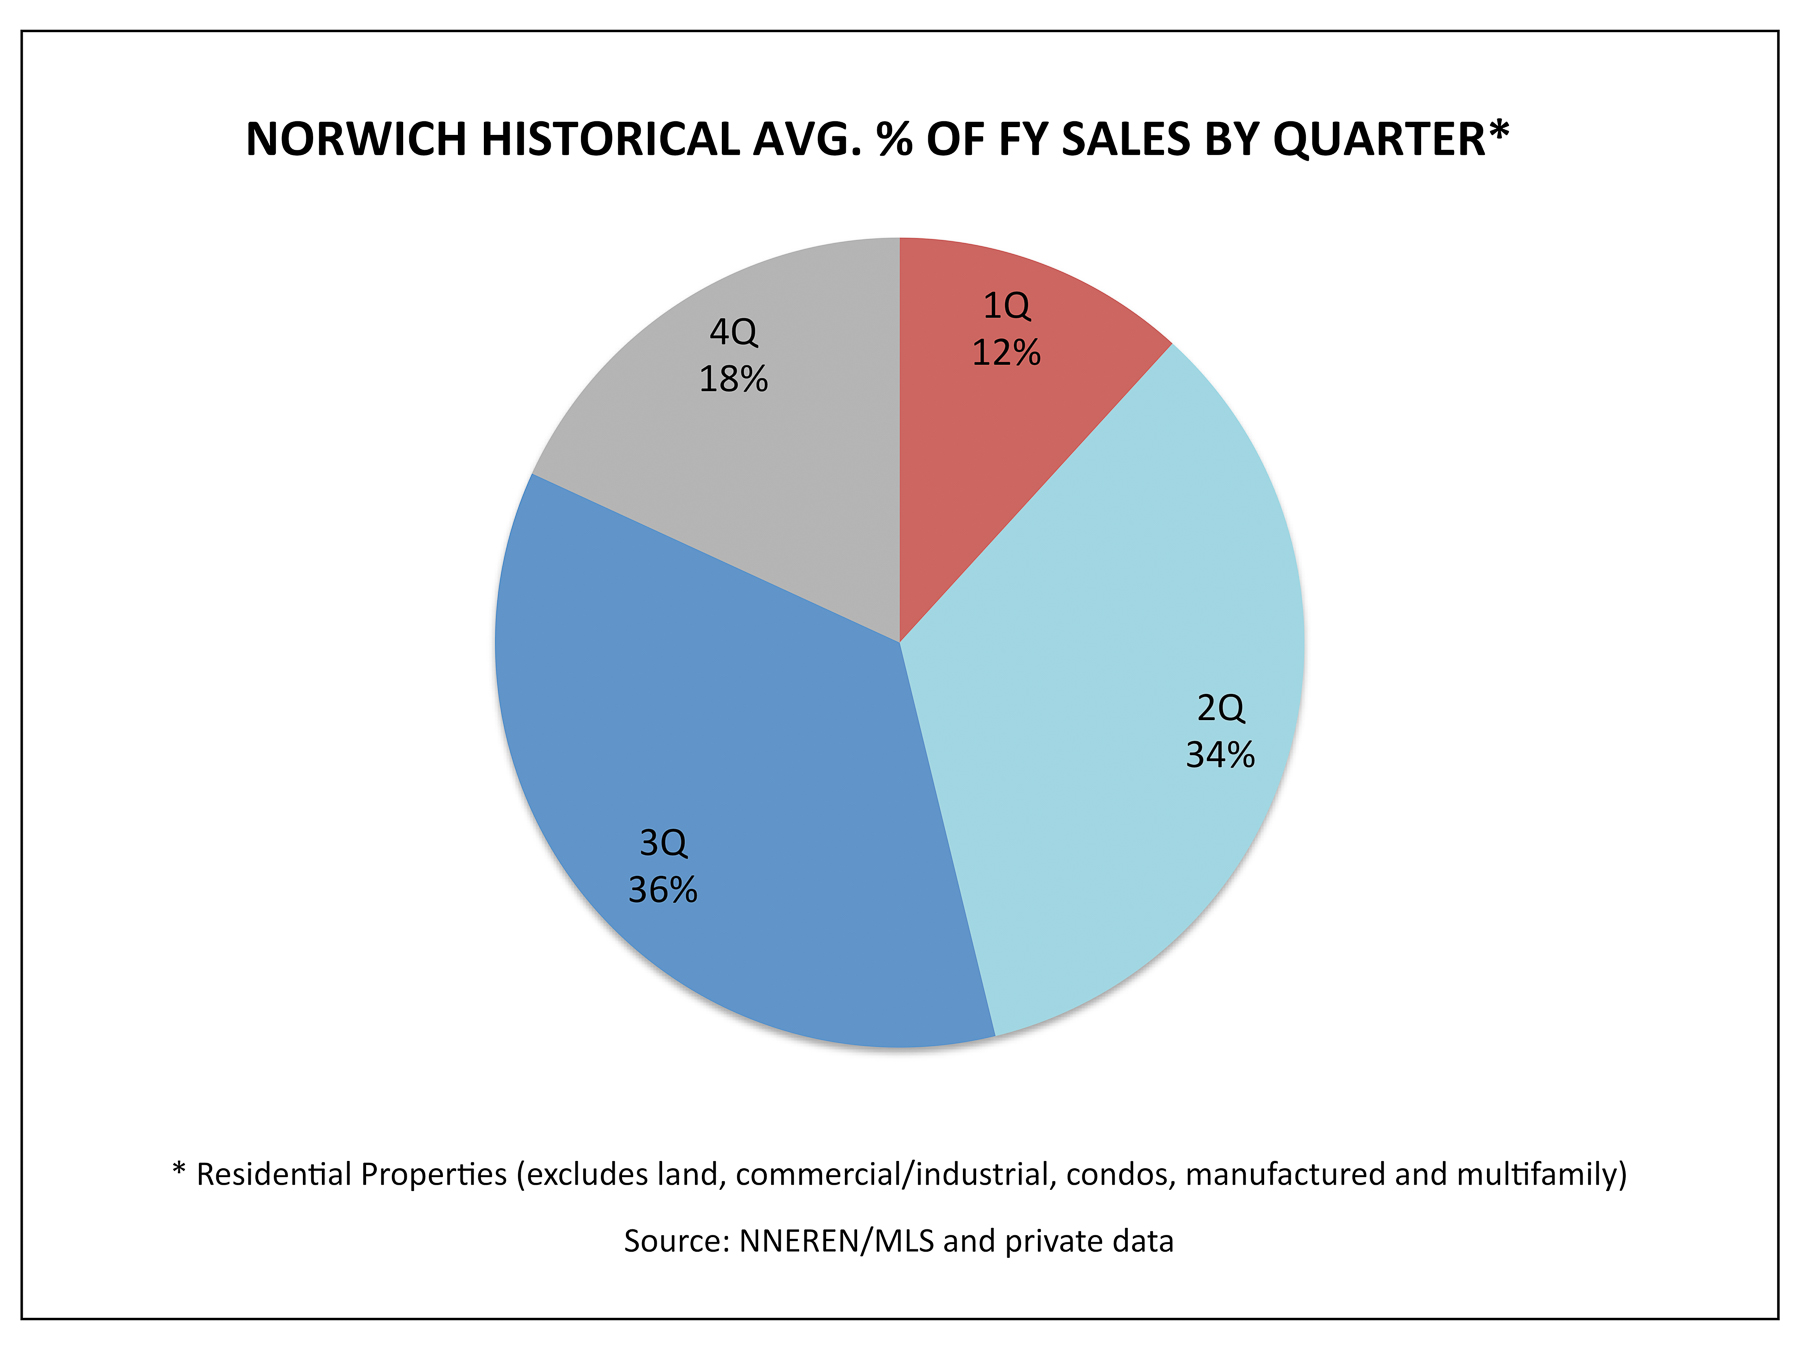 Norwich VT Real Estate - 1Q Historical Avg. % Homes Sold by Quarter